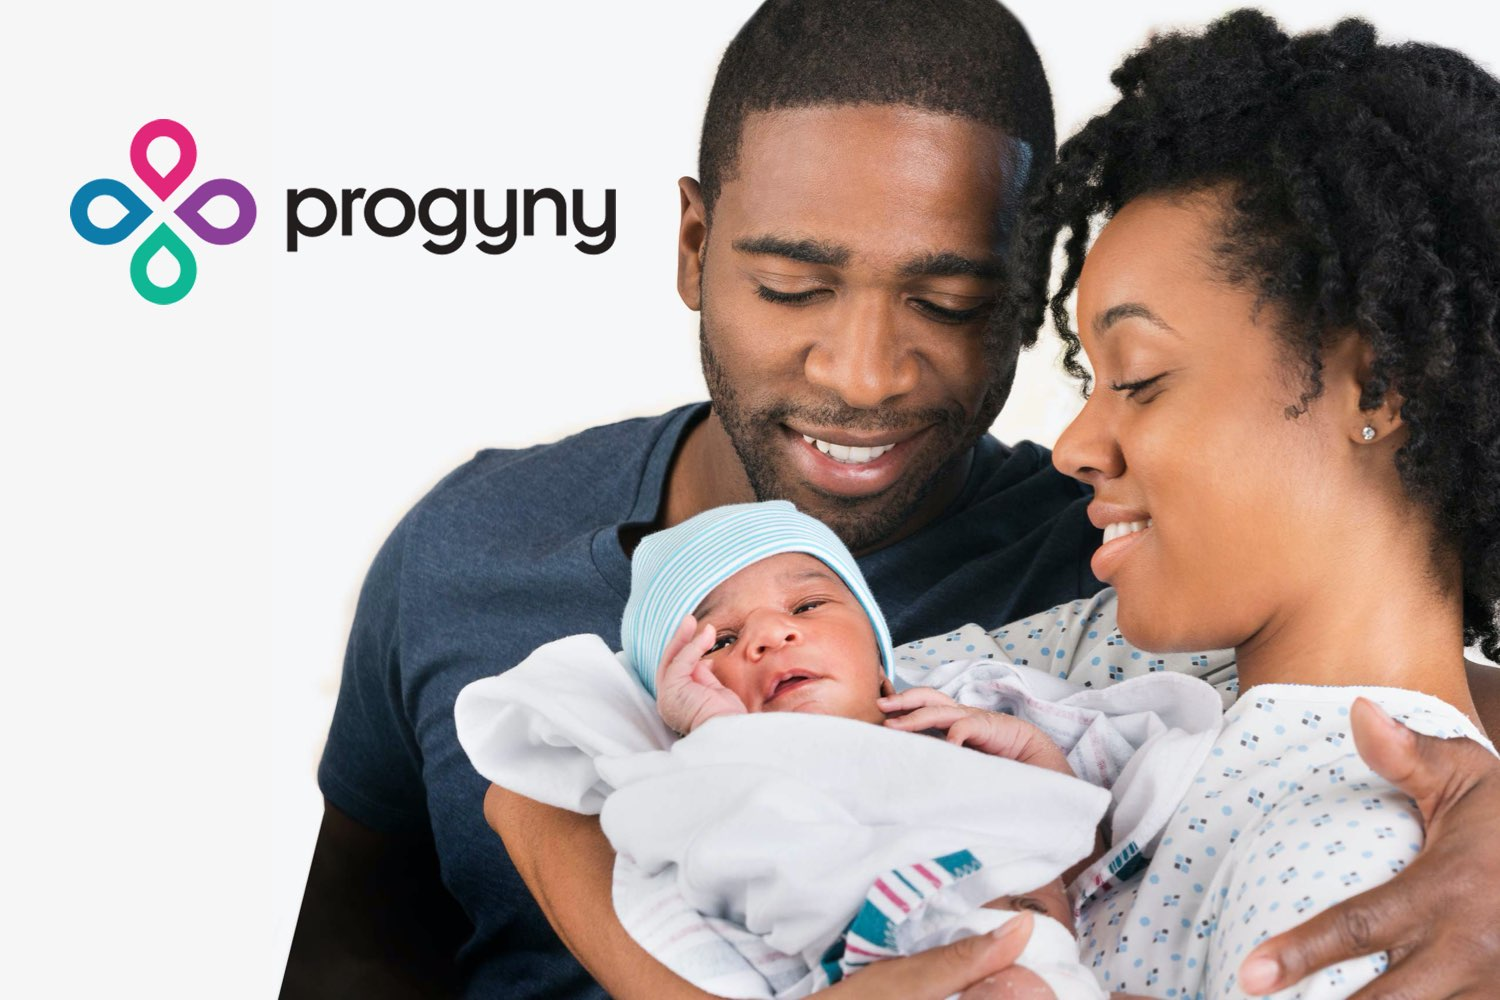 Image for article Progyny — helping people achieve the dream of parenthood